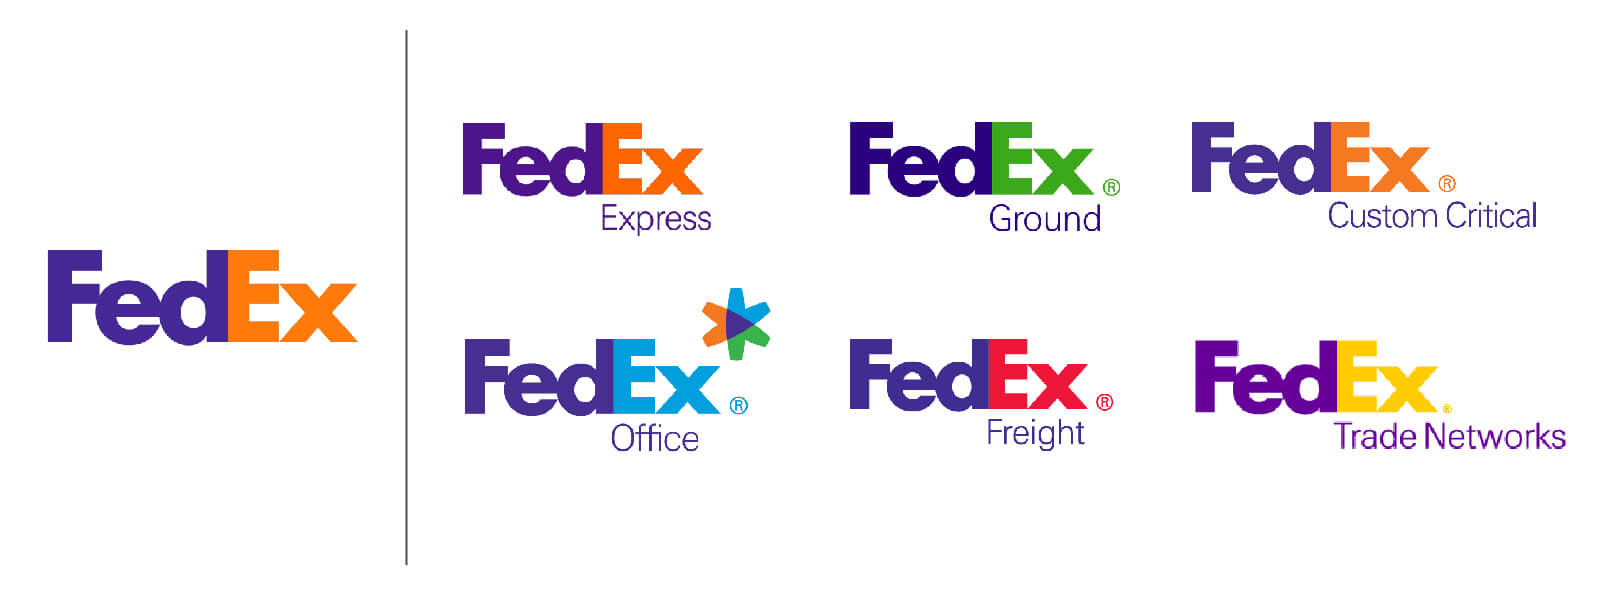 Fedex brand architecture and logos